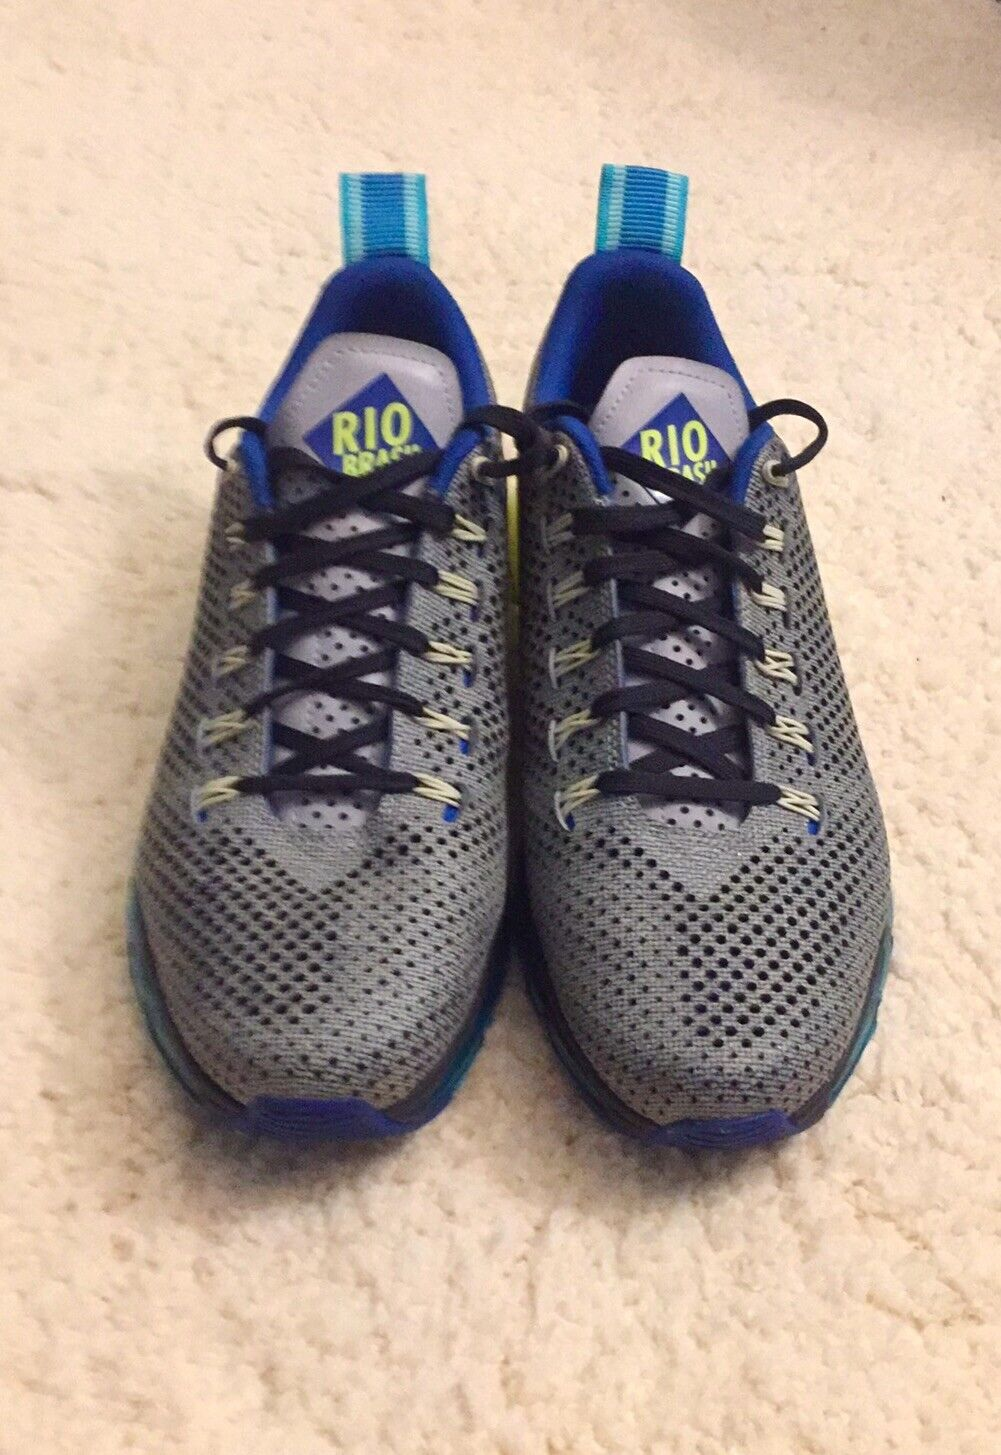 Nike Rio Air Max size 11 The most popular shoes for men and women